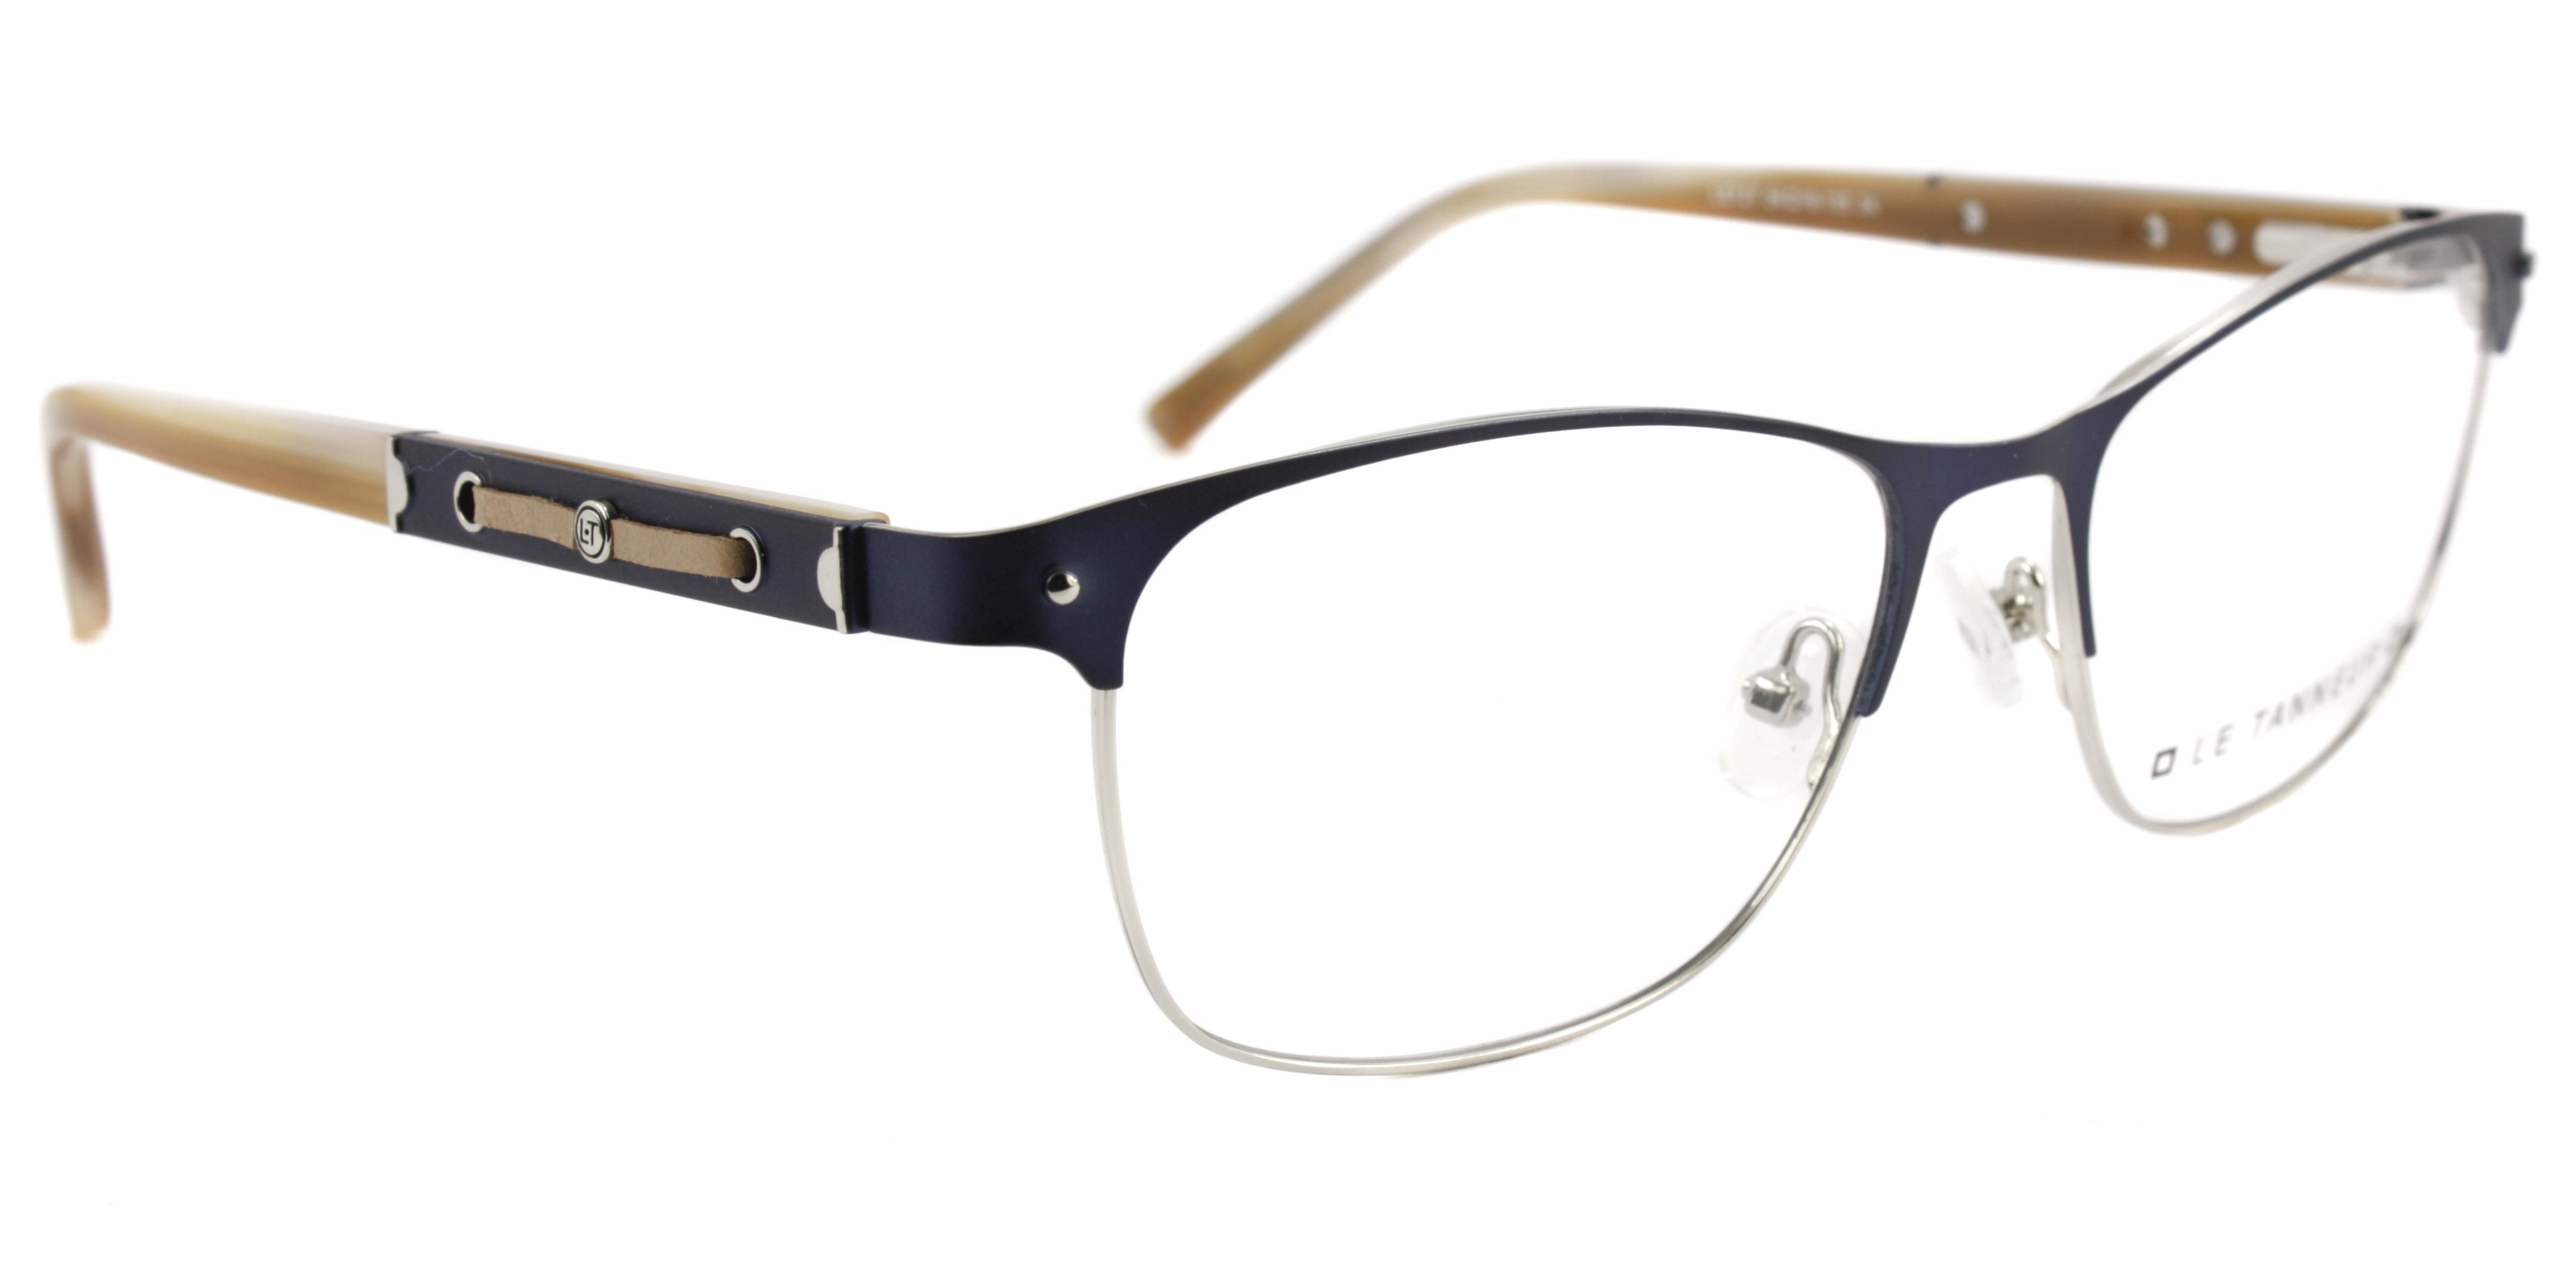 2bb8ba2f05 Le Tanneur Glasses Model LE 727